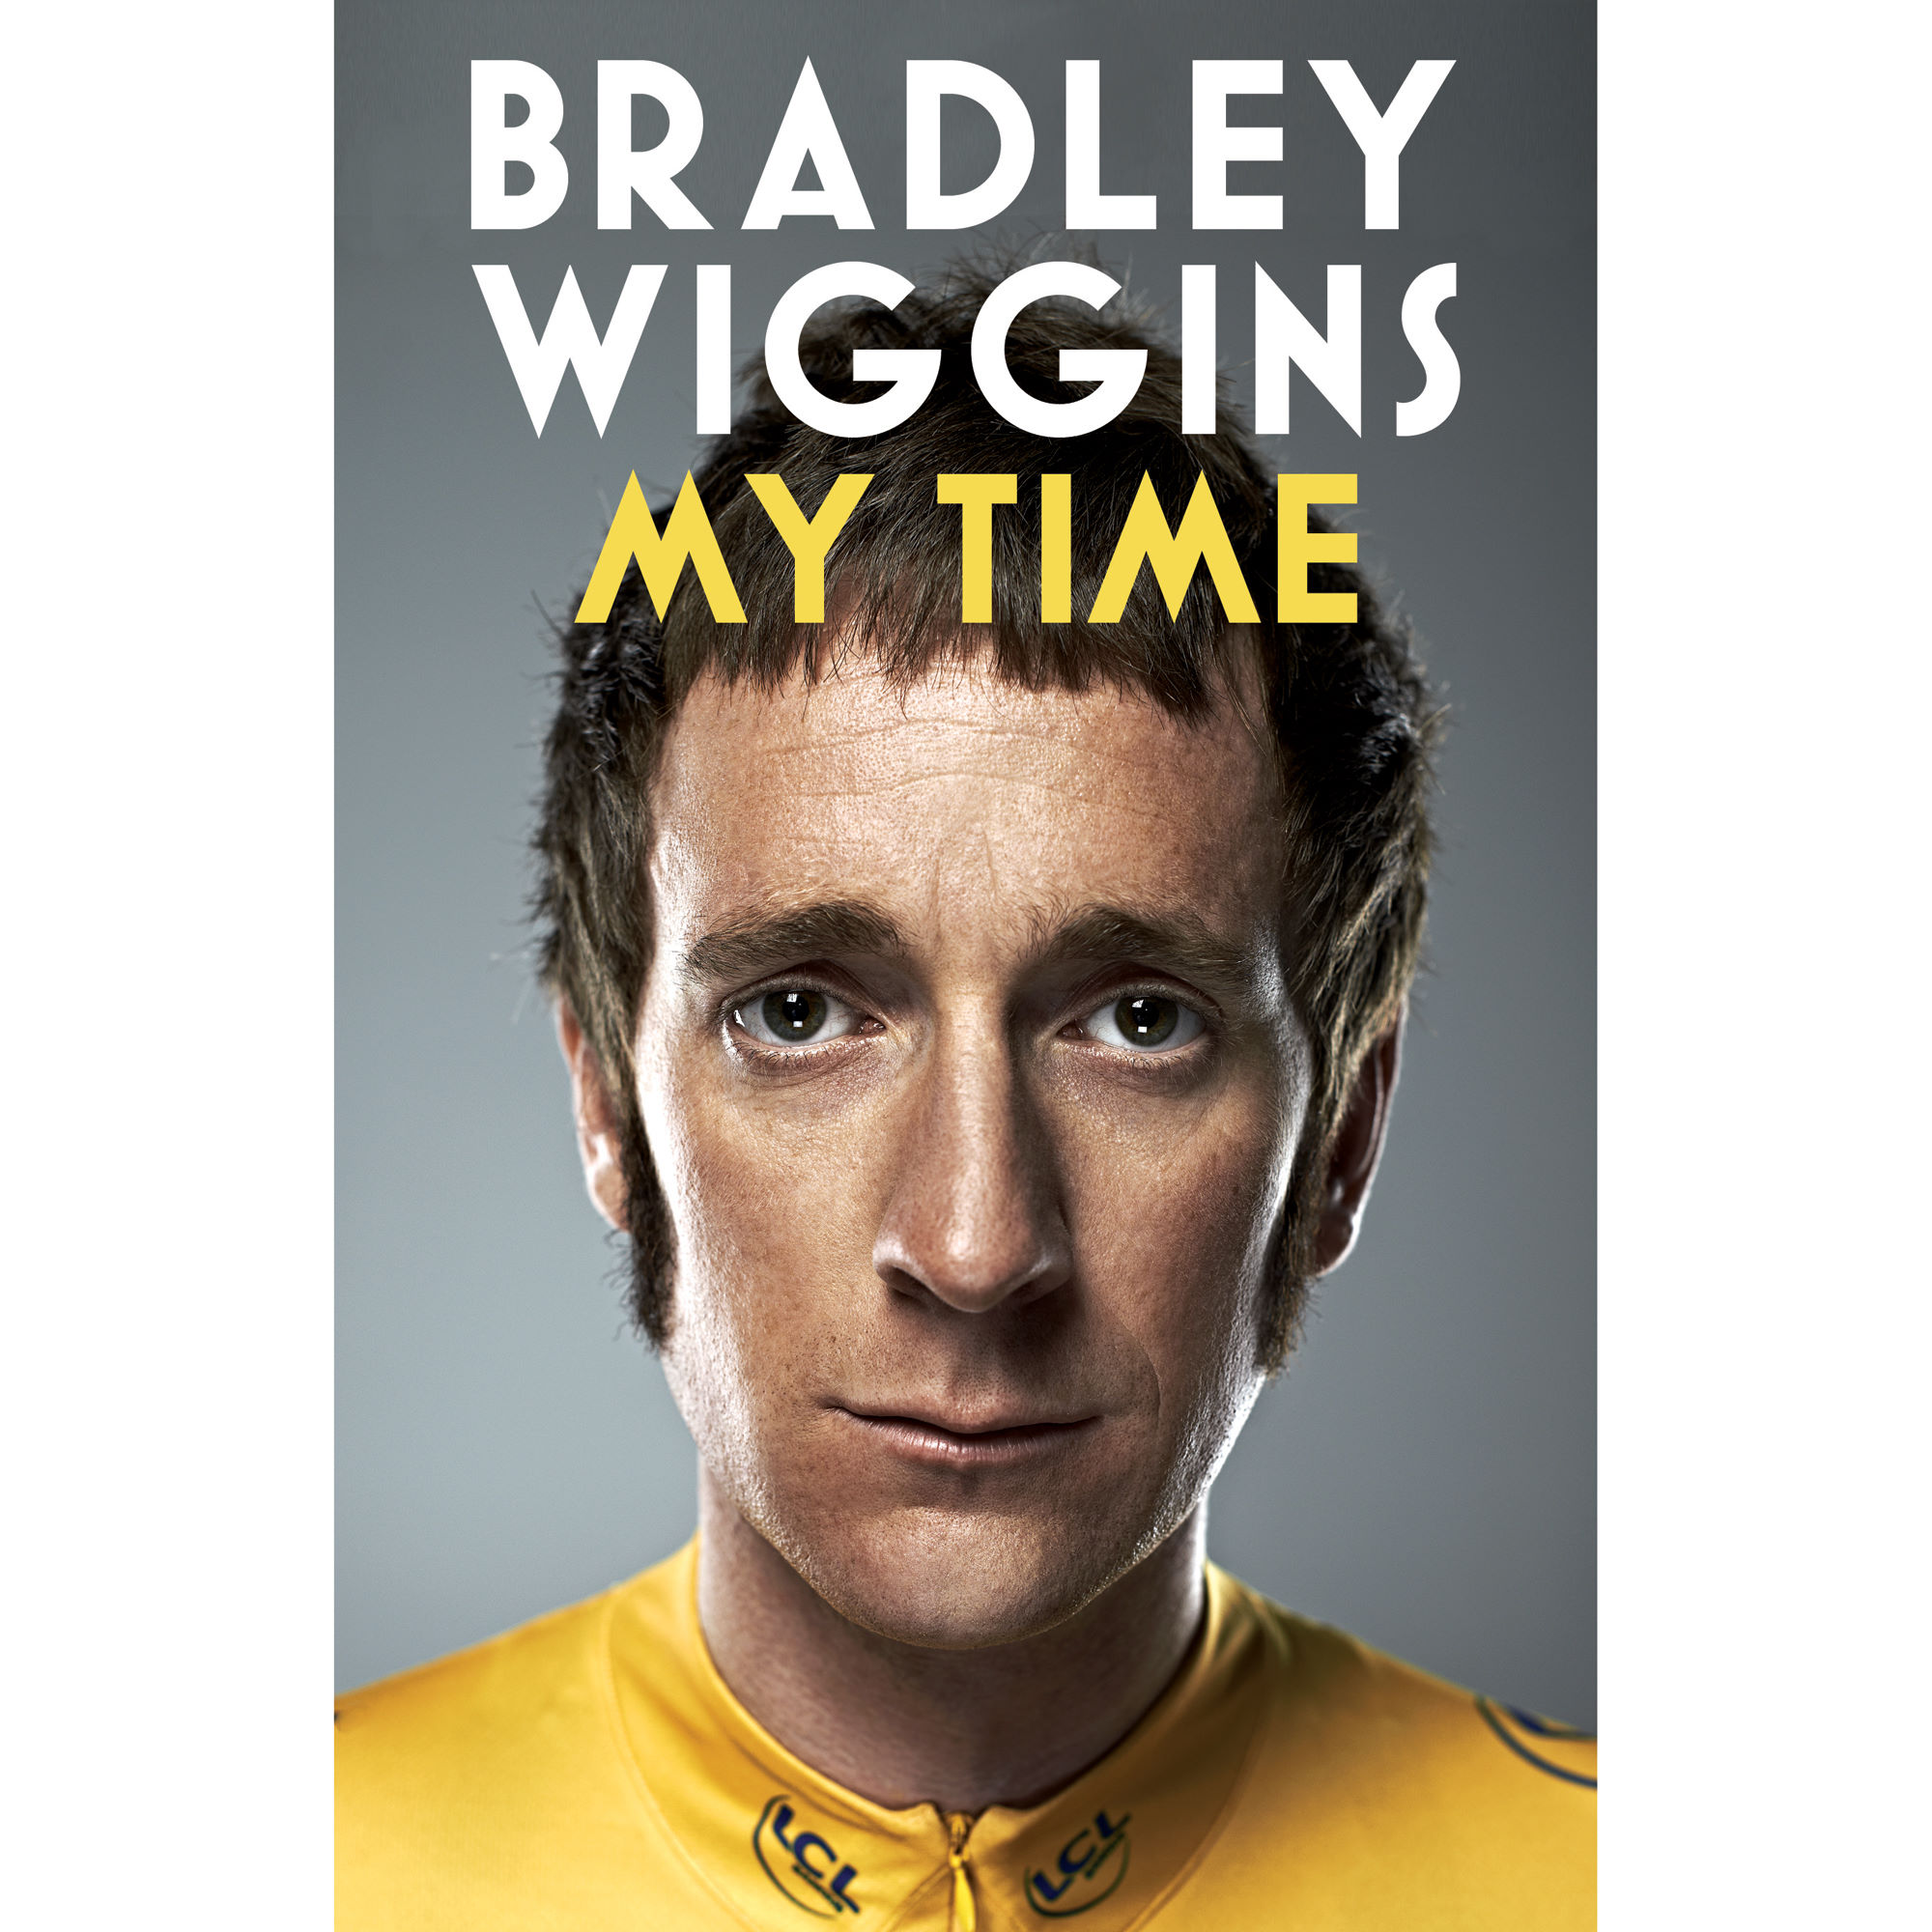 the life of bradley marc wiggins Bradley marc wiggins net worth is $7 million bradley marc wiggins bio/wiki, net worth sir bradley marc wiggins, cbe (born 28 april 1980), nicknamed wiggo, is a british professional road and track racing cyclist who rides for the uci proteam team sky.